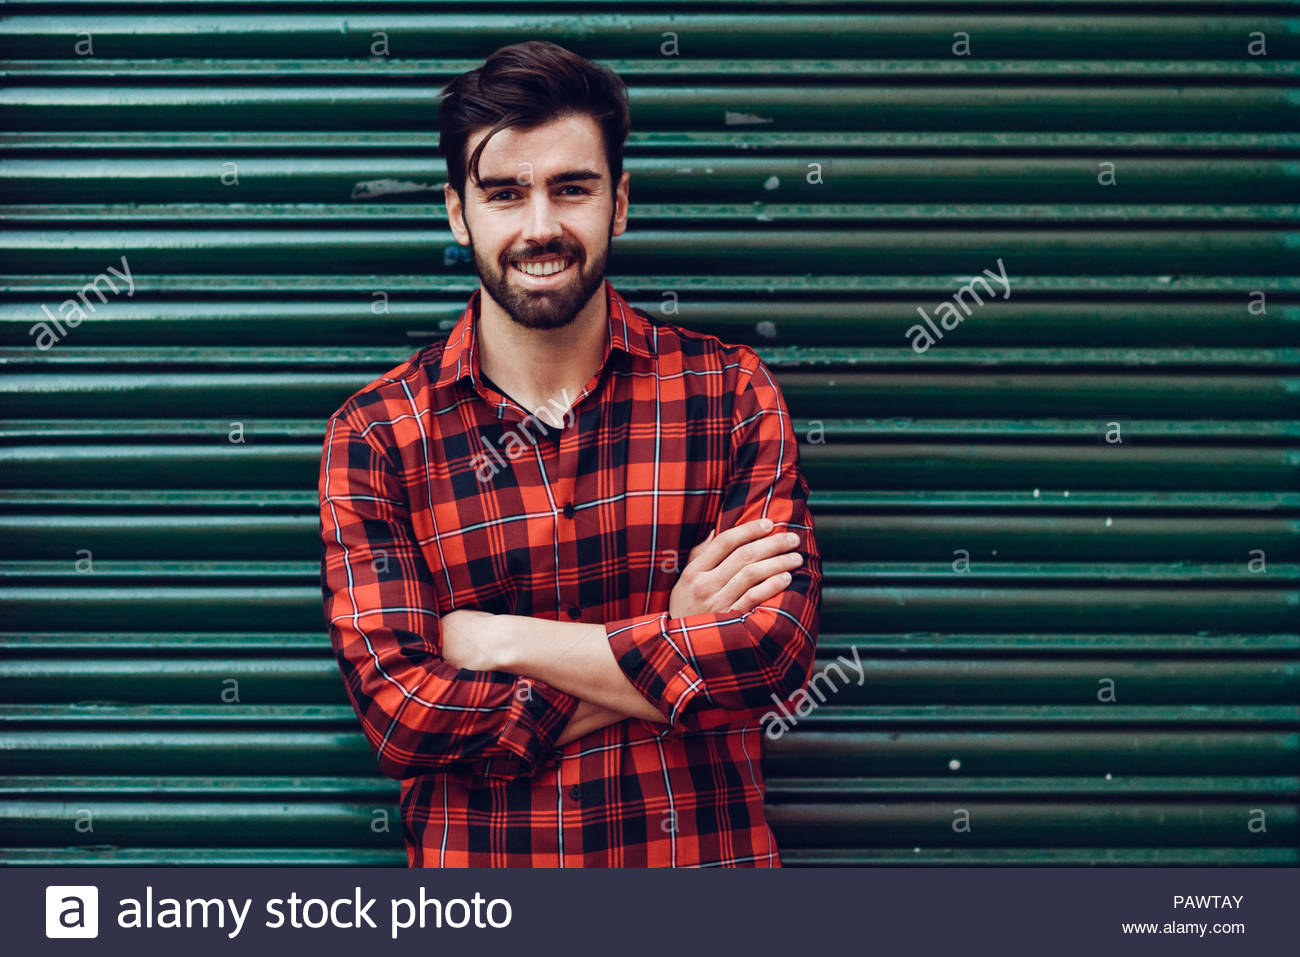 Portrait of a young man standing against a wall looking into the camera - Stock Image